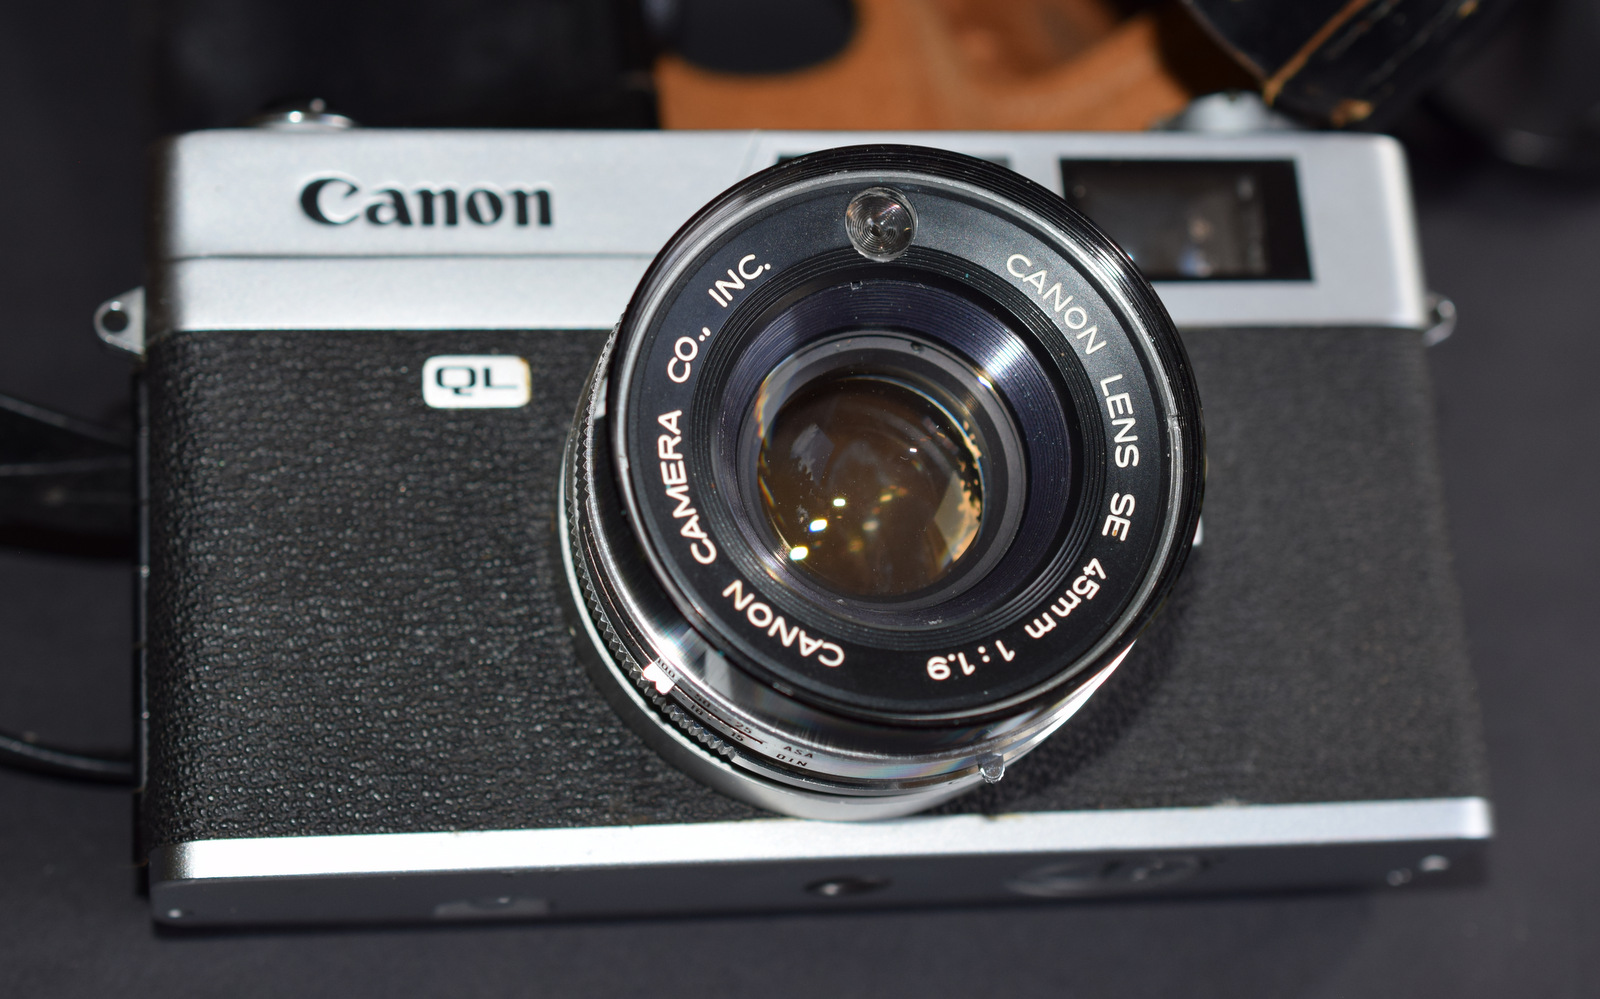 Lot 7 - Canon QL19 35mm Film Camera With 45/1.9 Canon Lens